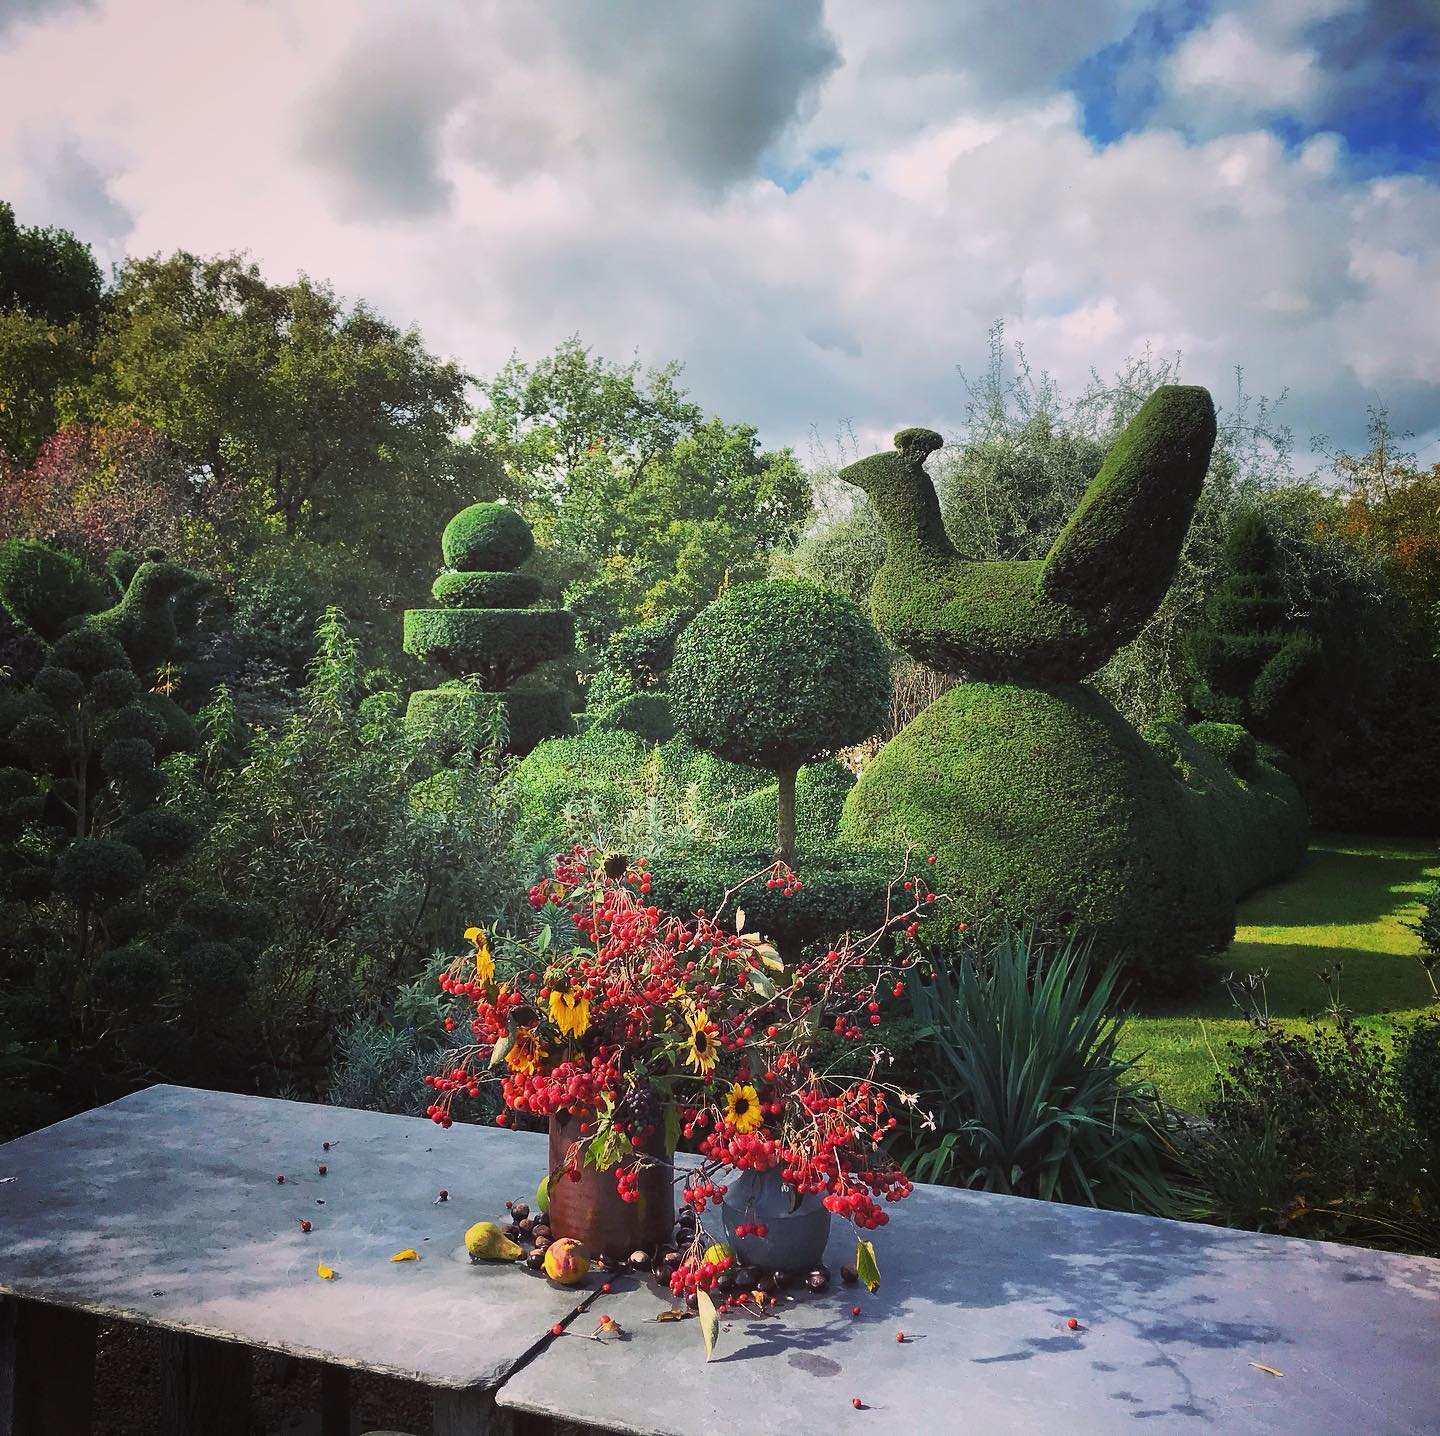 Wonderful day yesterday with #charlottemolesworth shooting a new exciting project with @marianboswall ...#charlottemolesworth #topiarygarden #topiary #gardenphotography #gardenphotoshoot #gardenphotographer #marianboswalllandscapes #autumngarden #autumn